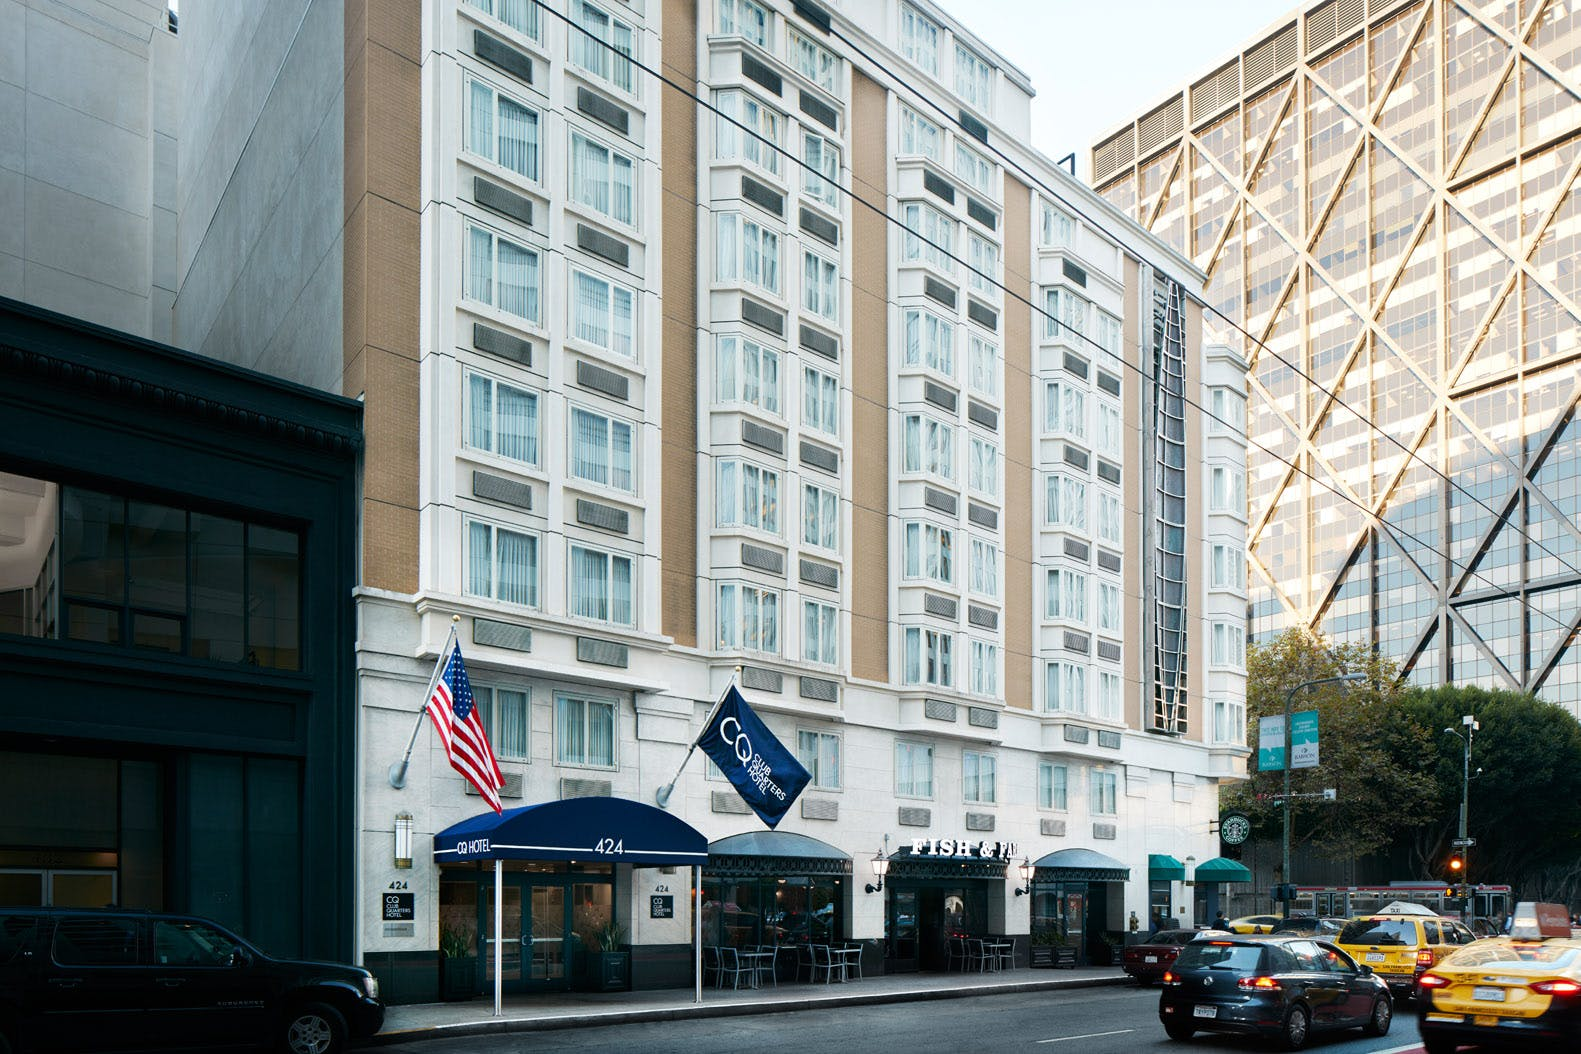 Exterior of Club Quarters Hotel in San Francisco